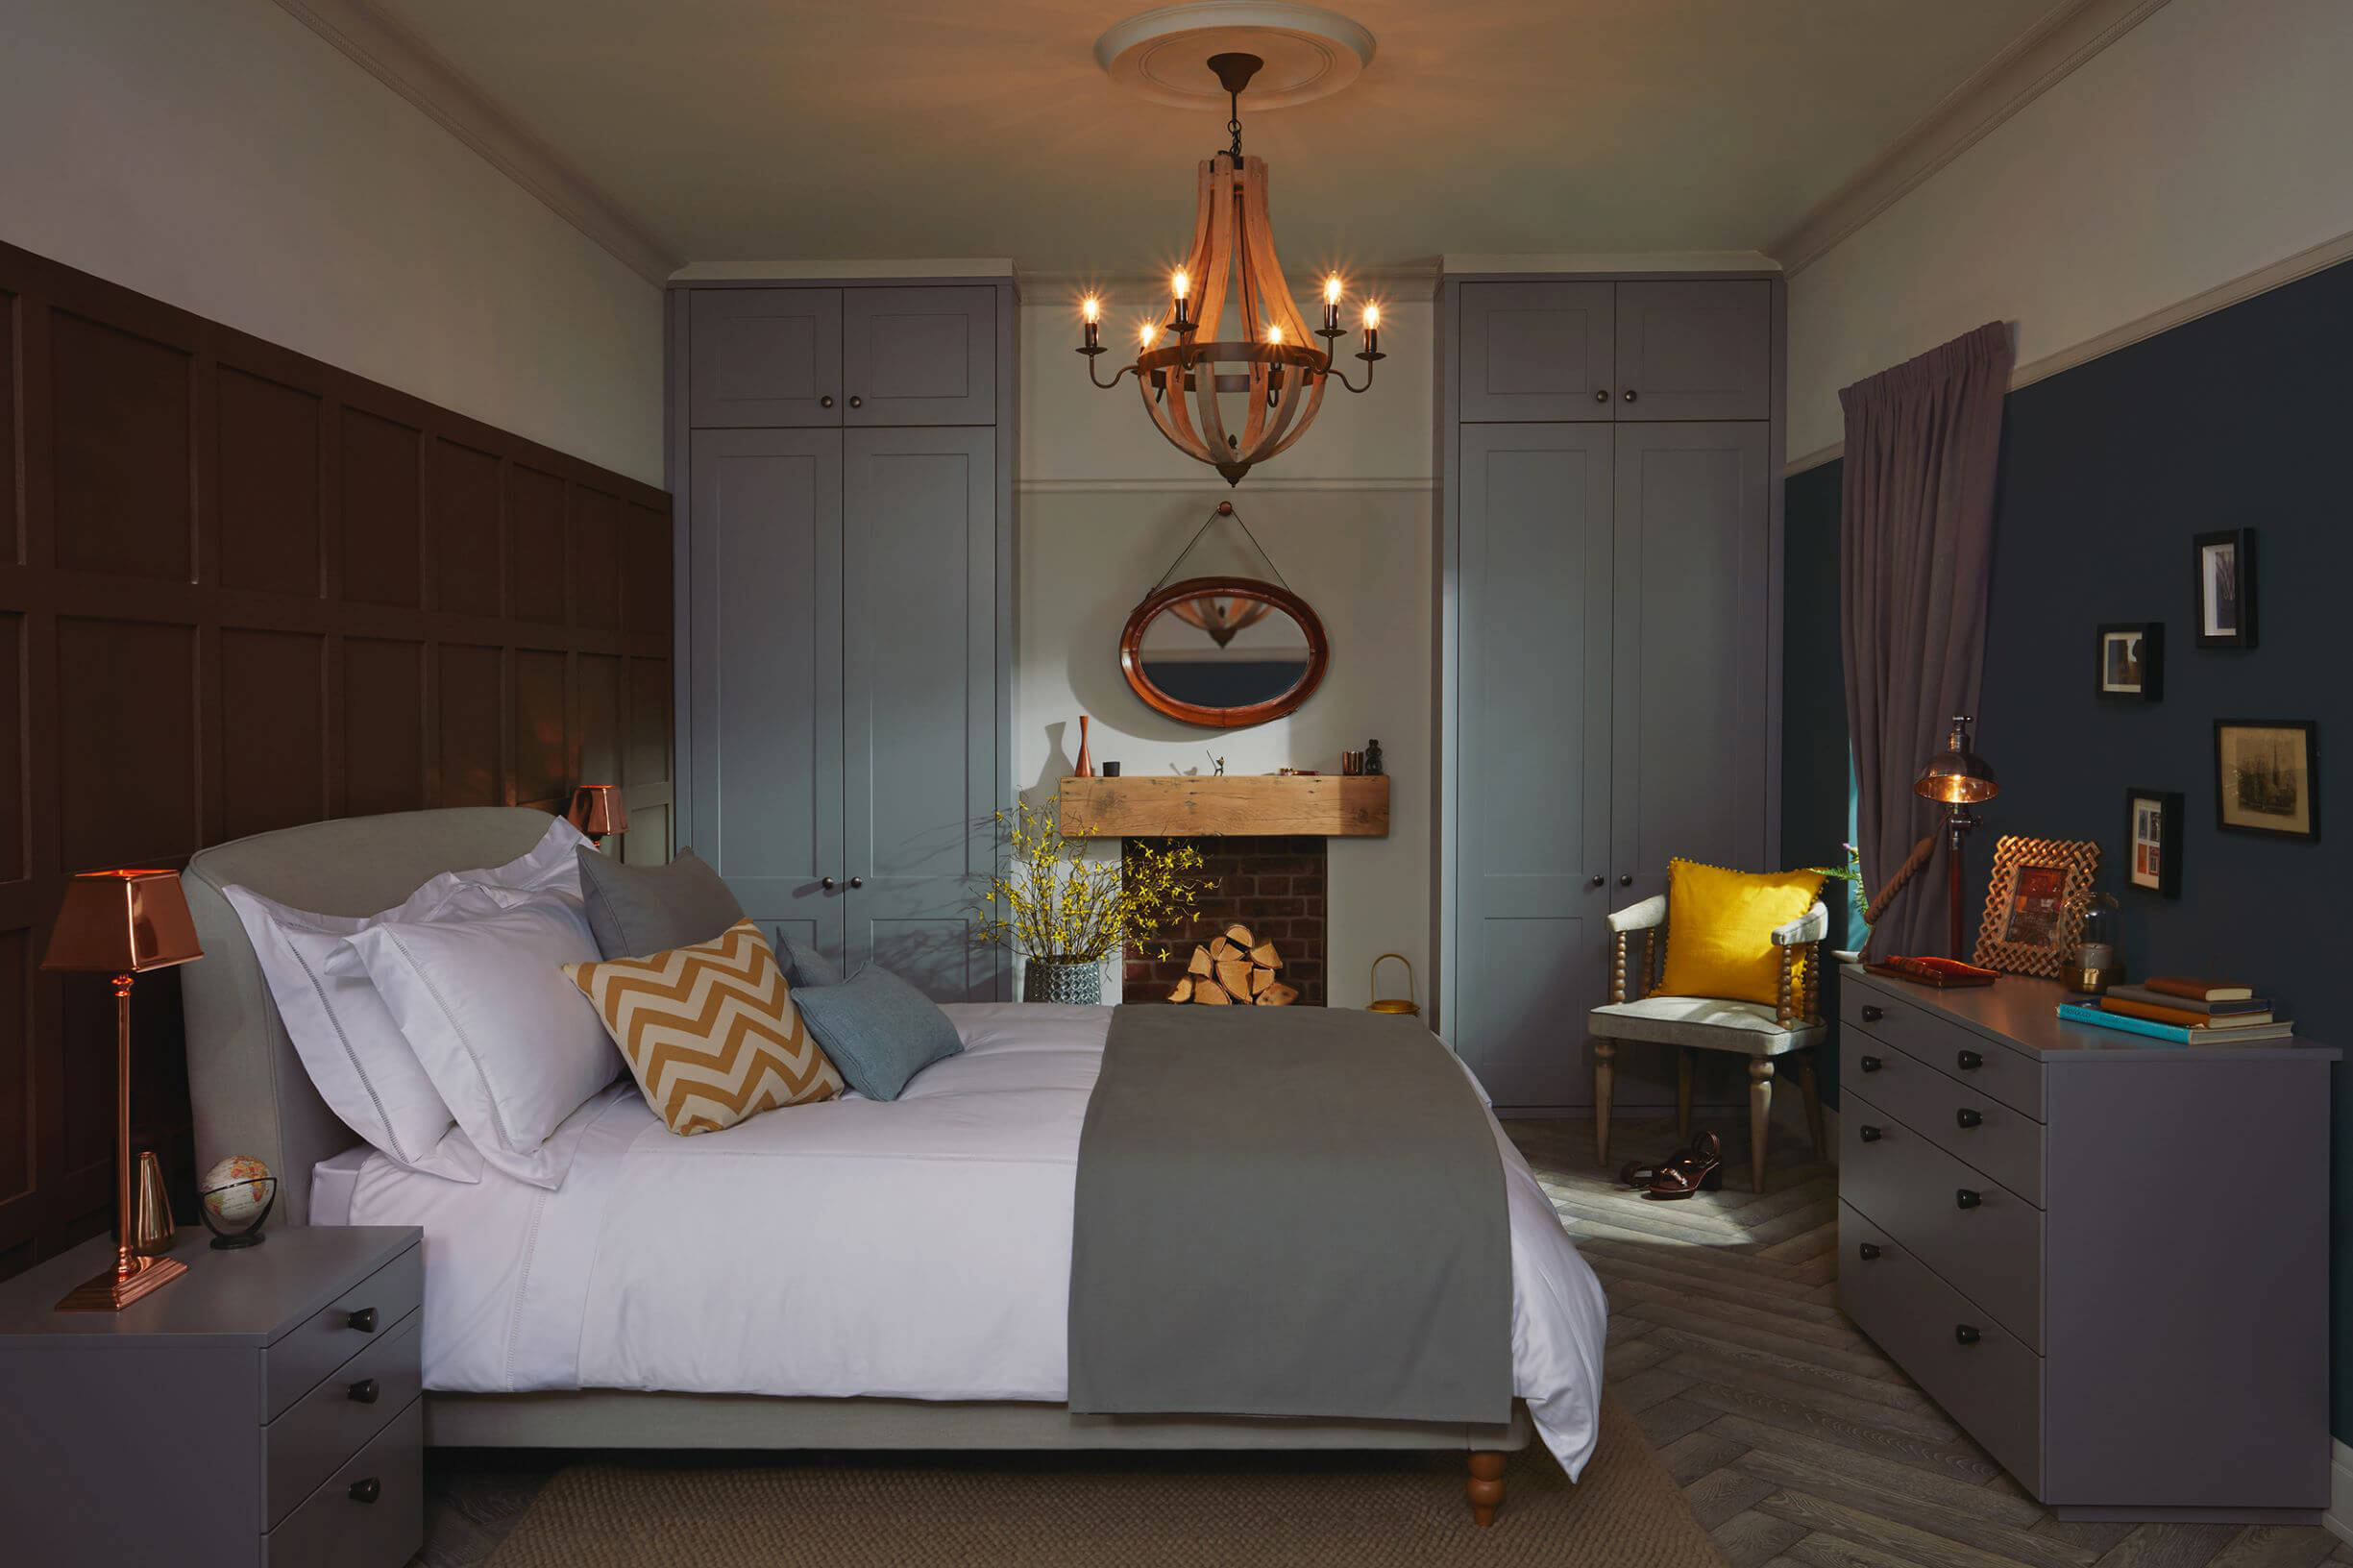 Kindred-Bedrooms-Esker-Gallery3